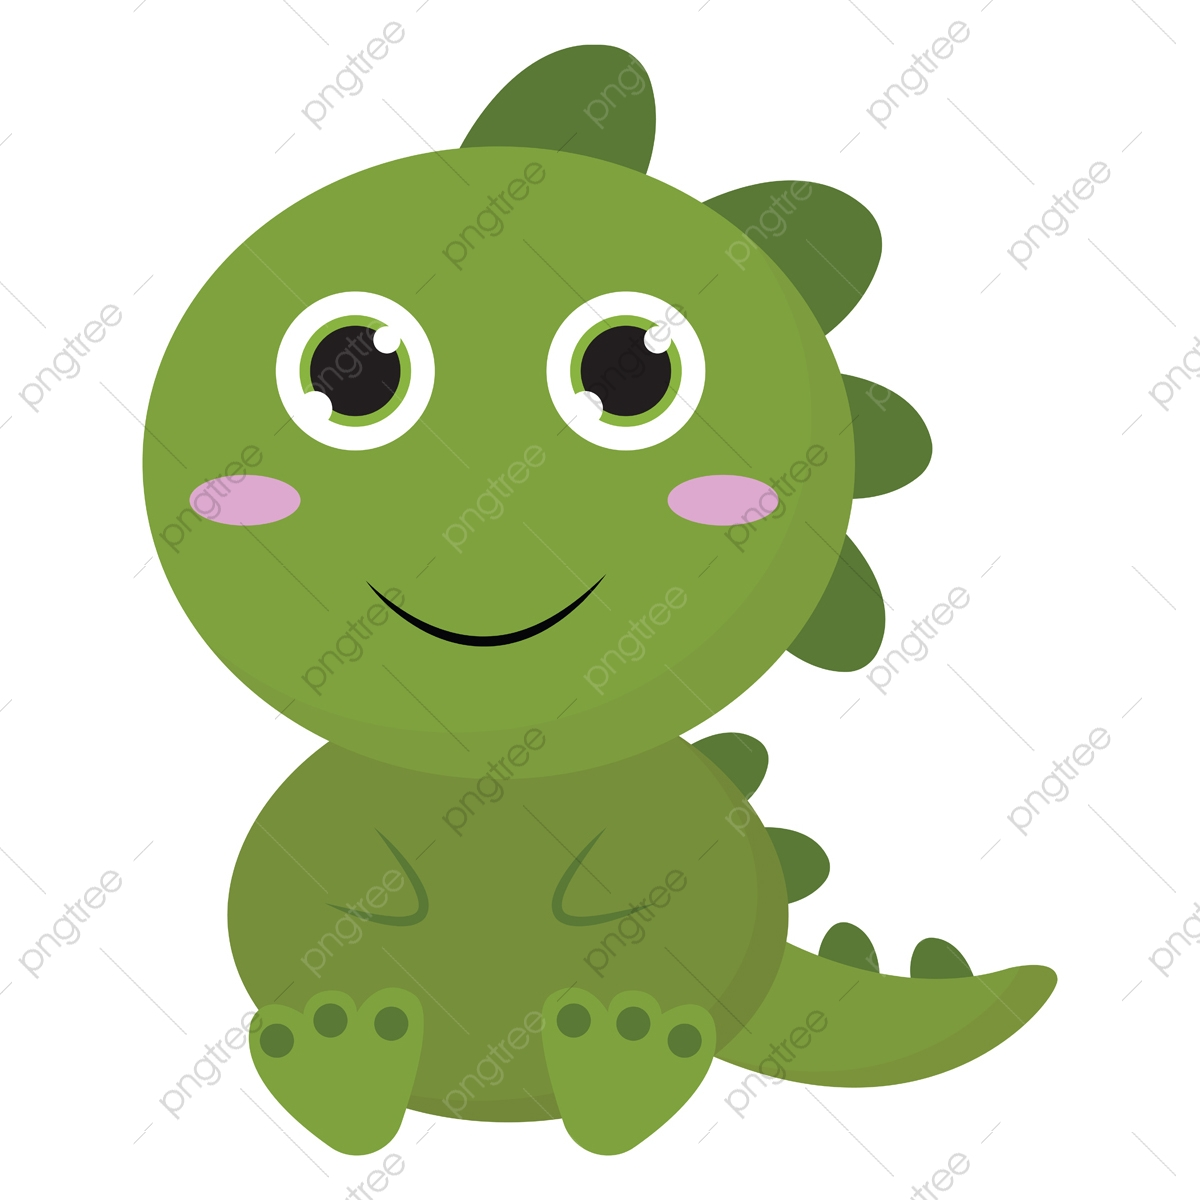 ᐈ Dinosaurs stock cliparts, Royalty Free dinosaur illustrations images |  download on Depositphotos®